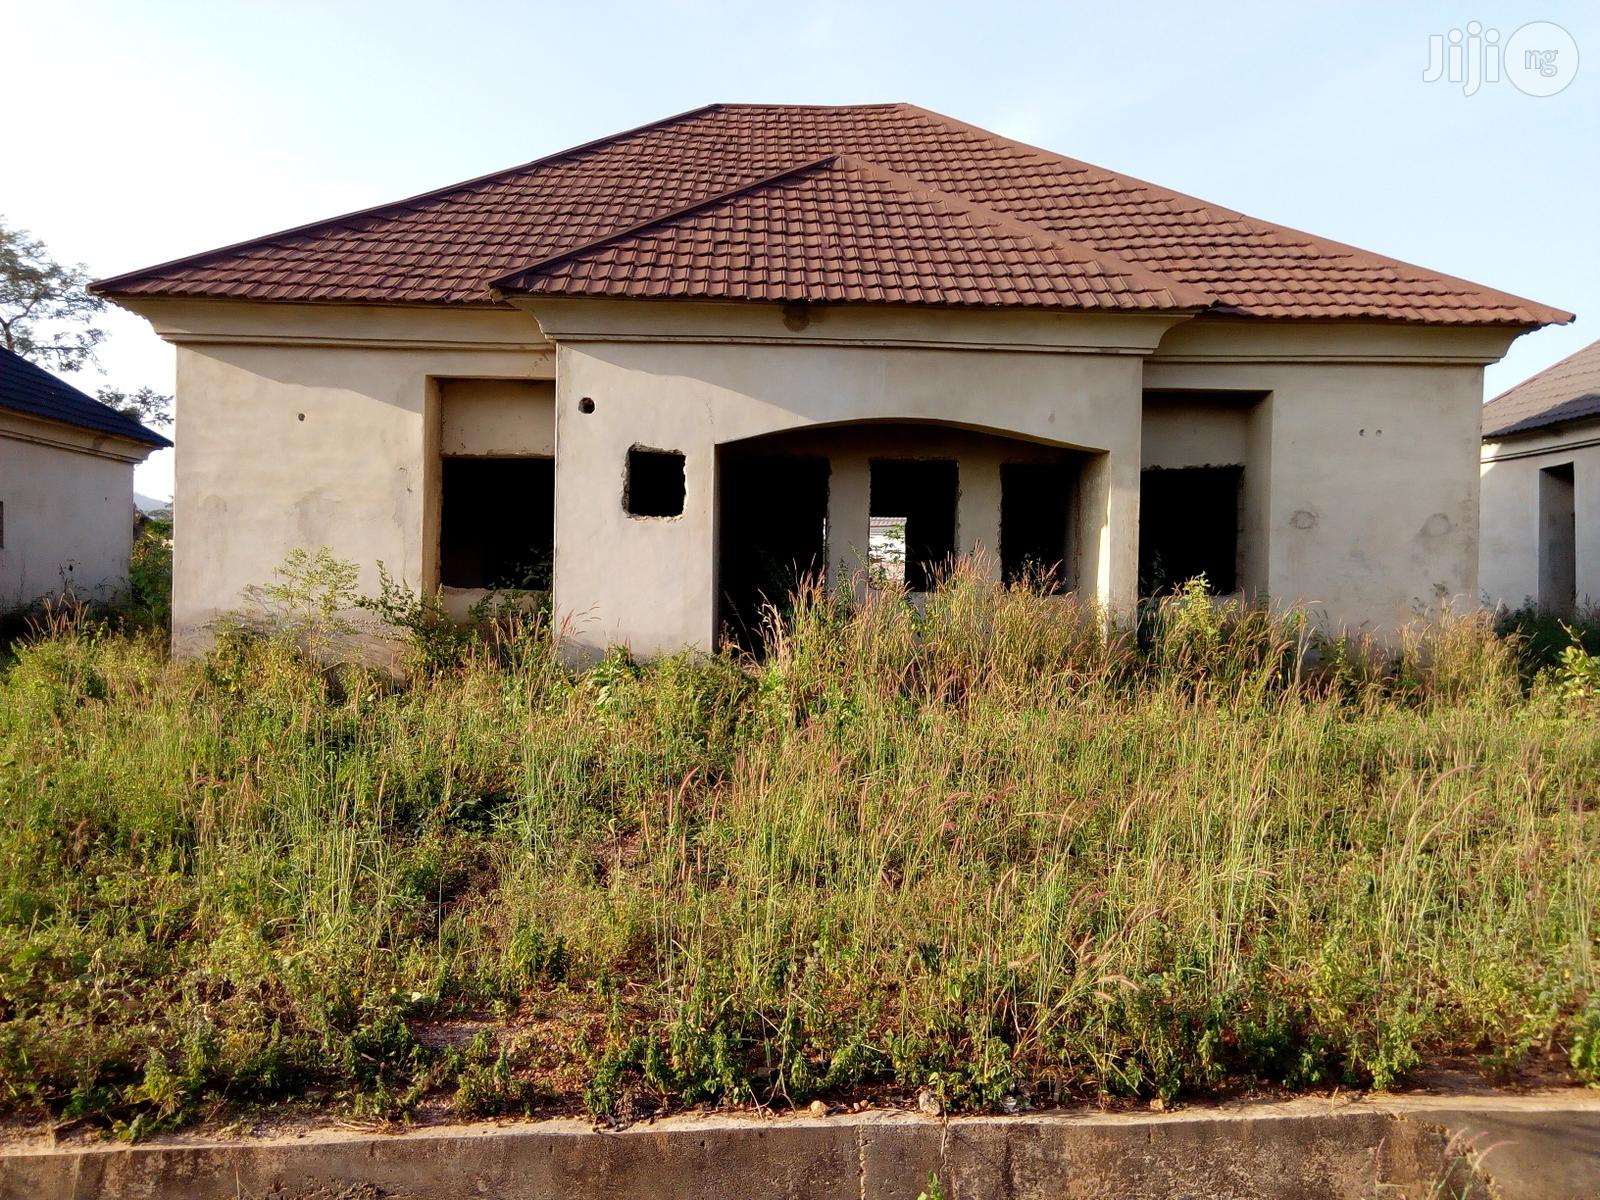 Mortgage 3 Bedroom Carcass Bungalow for Sale in Karsana